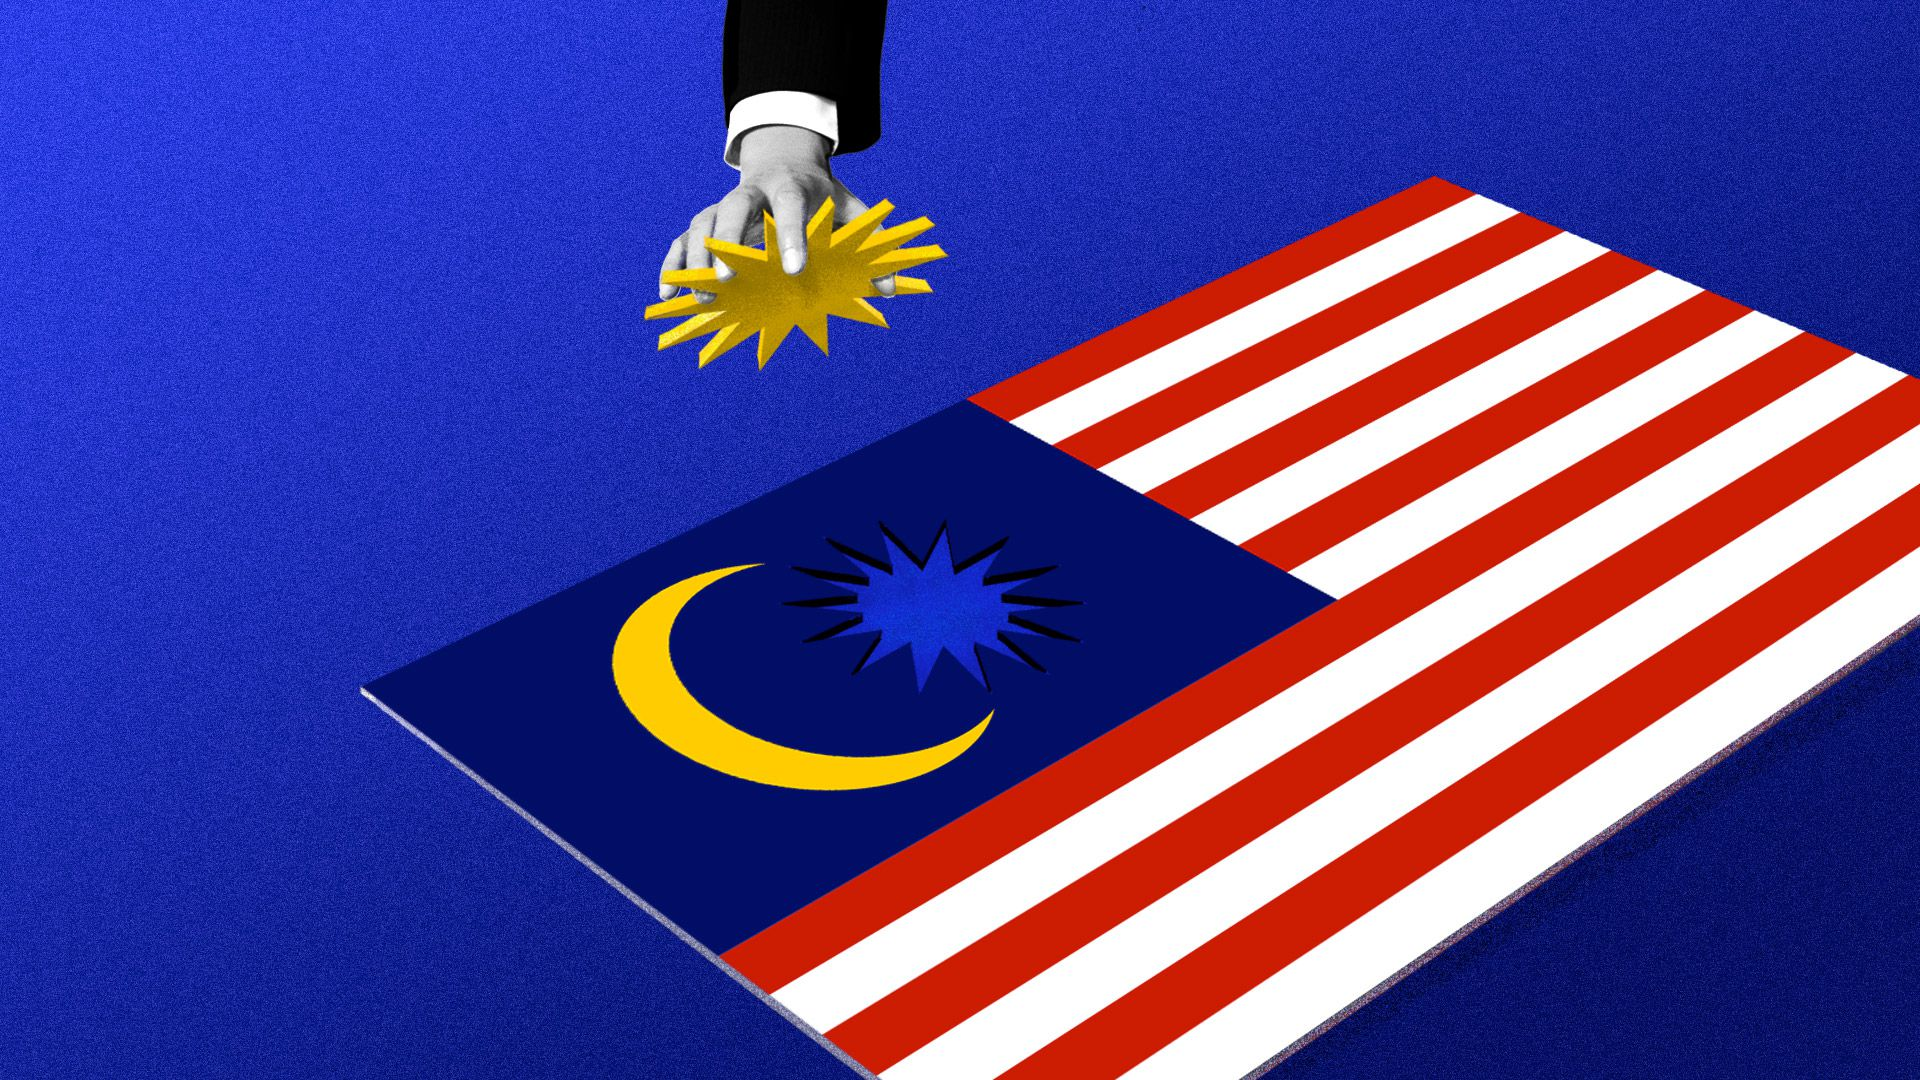 A hand pulling the star from the Malaysian flag